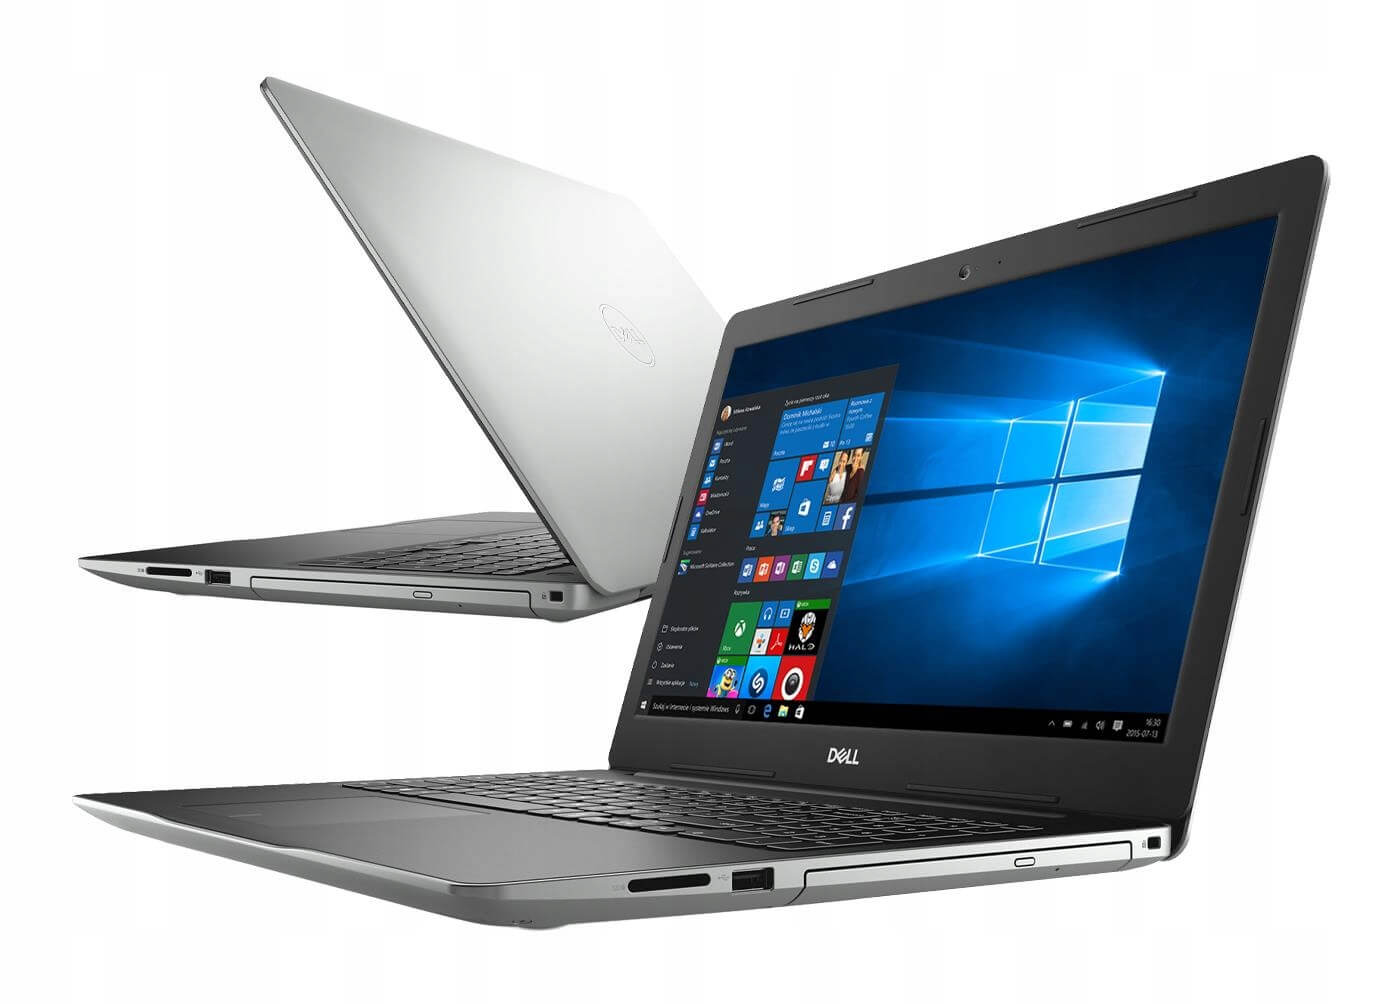 DELL INSPIRION 15 3581-4923 INTEL CORE I3-7020U 2.3 / 8192 MB DDR4 / 480 GB SSD / WINDOWS 10 HOME / 15.6